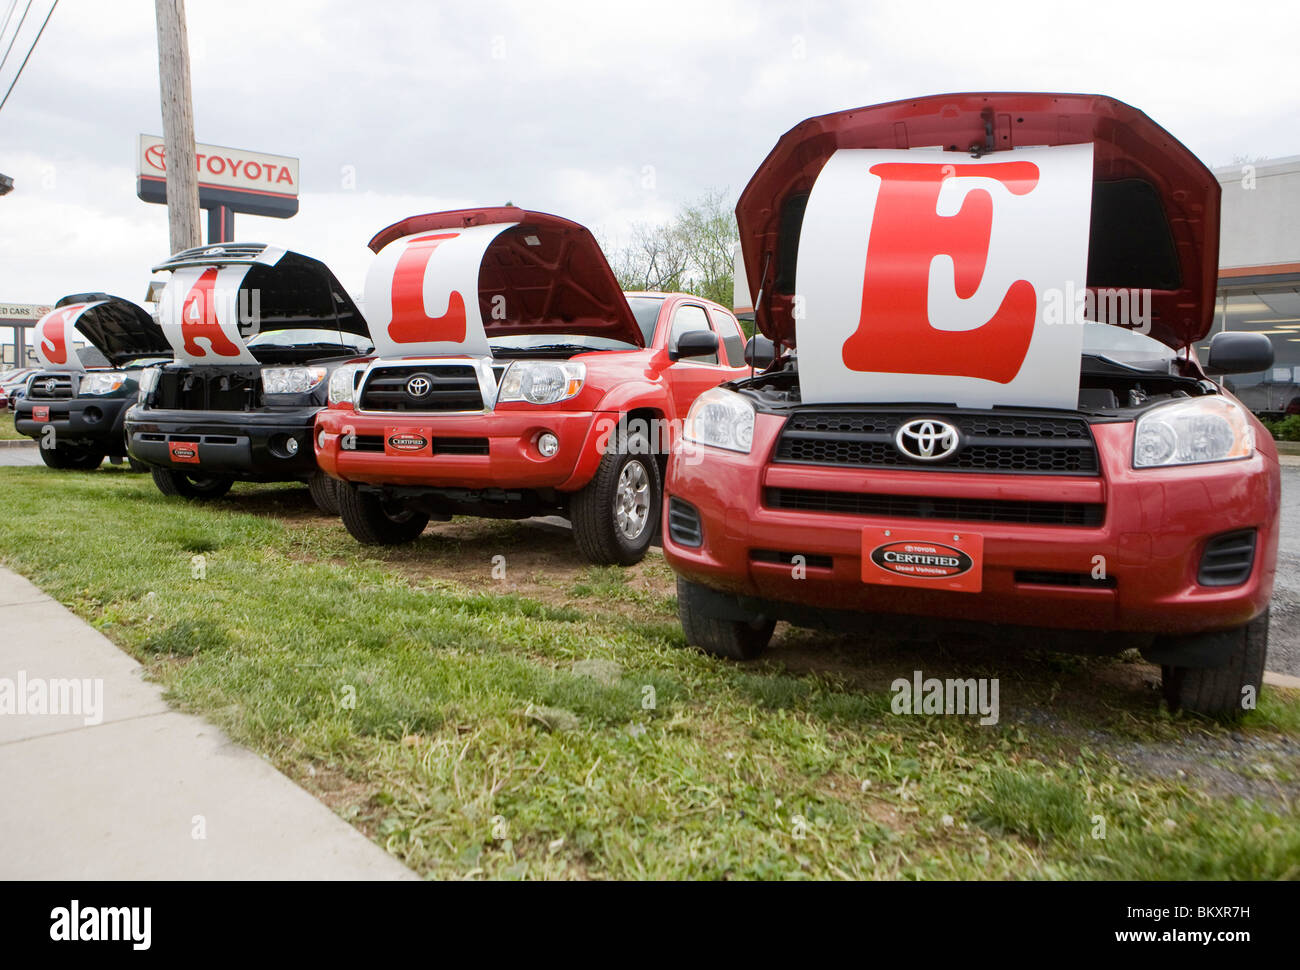 Toyota vehicles on a dealership lot with a 'Sale' sign.  - Stock Image